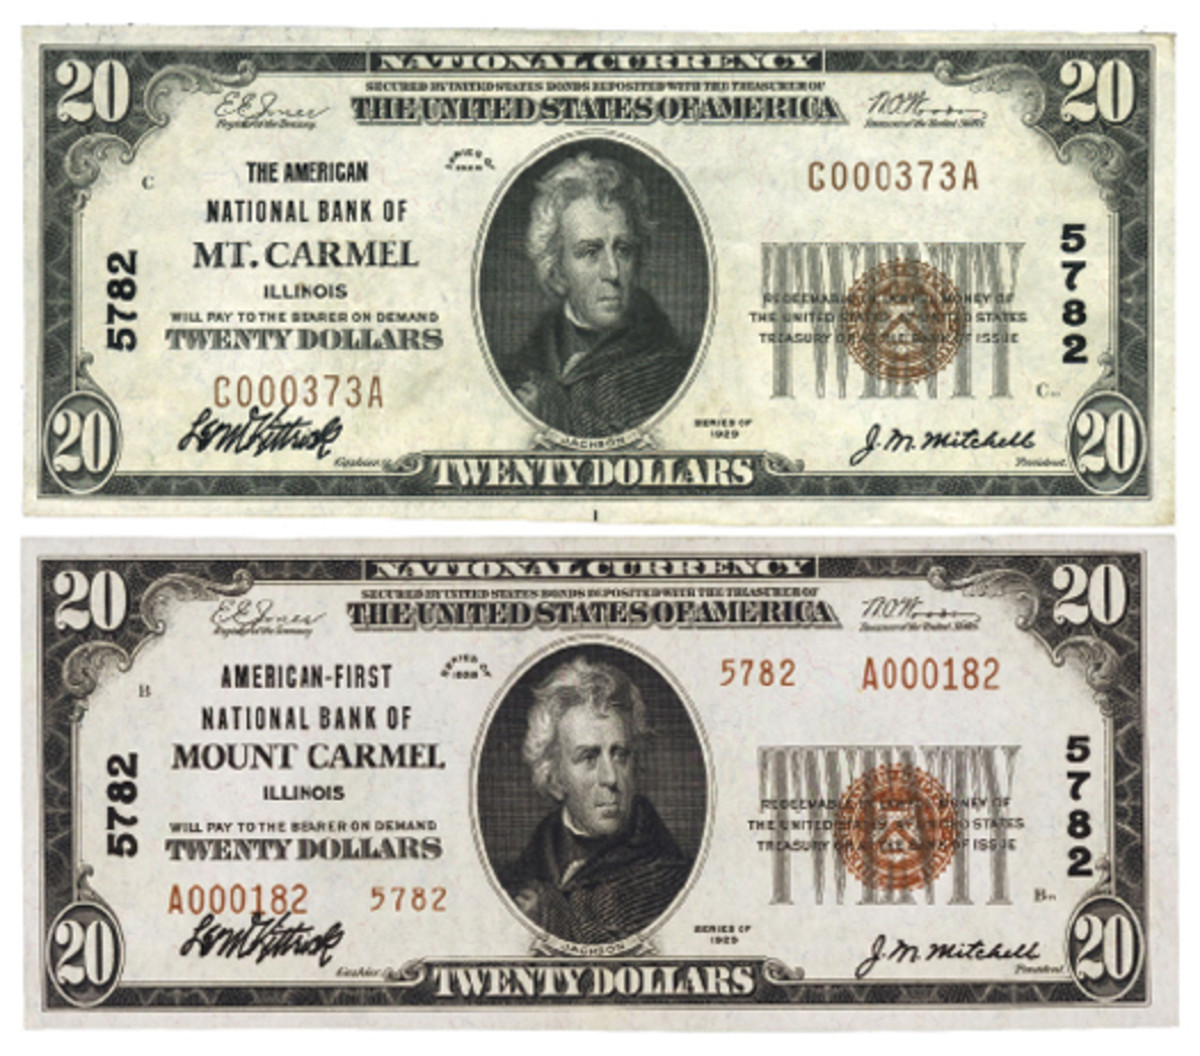 Figure 2. Location remained the same for the Illinois bank that issued these Series of 1929 notes, but spelling changed from an abreviated Mt. Carmel (top) to Mount Carmel (bottom) on Aug. 24, 1934.